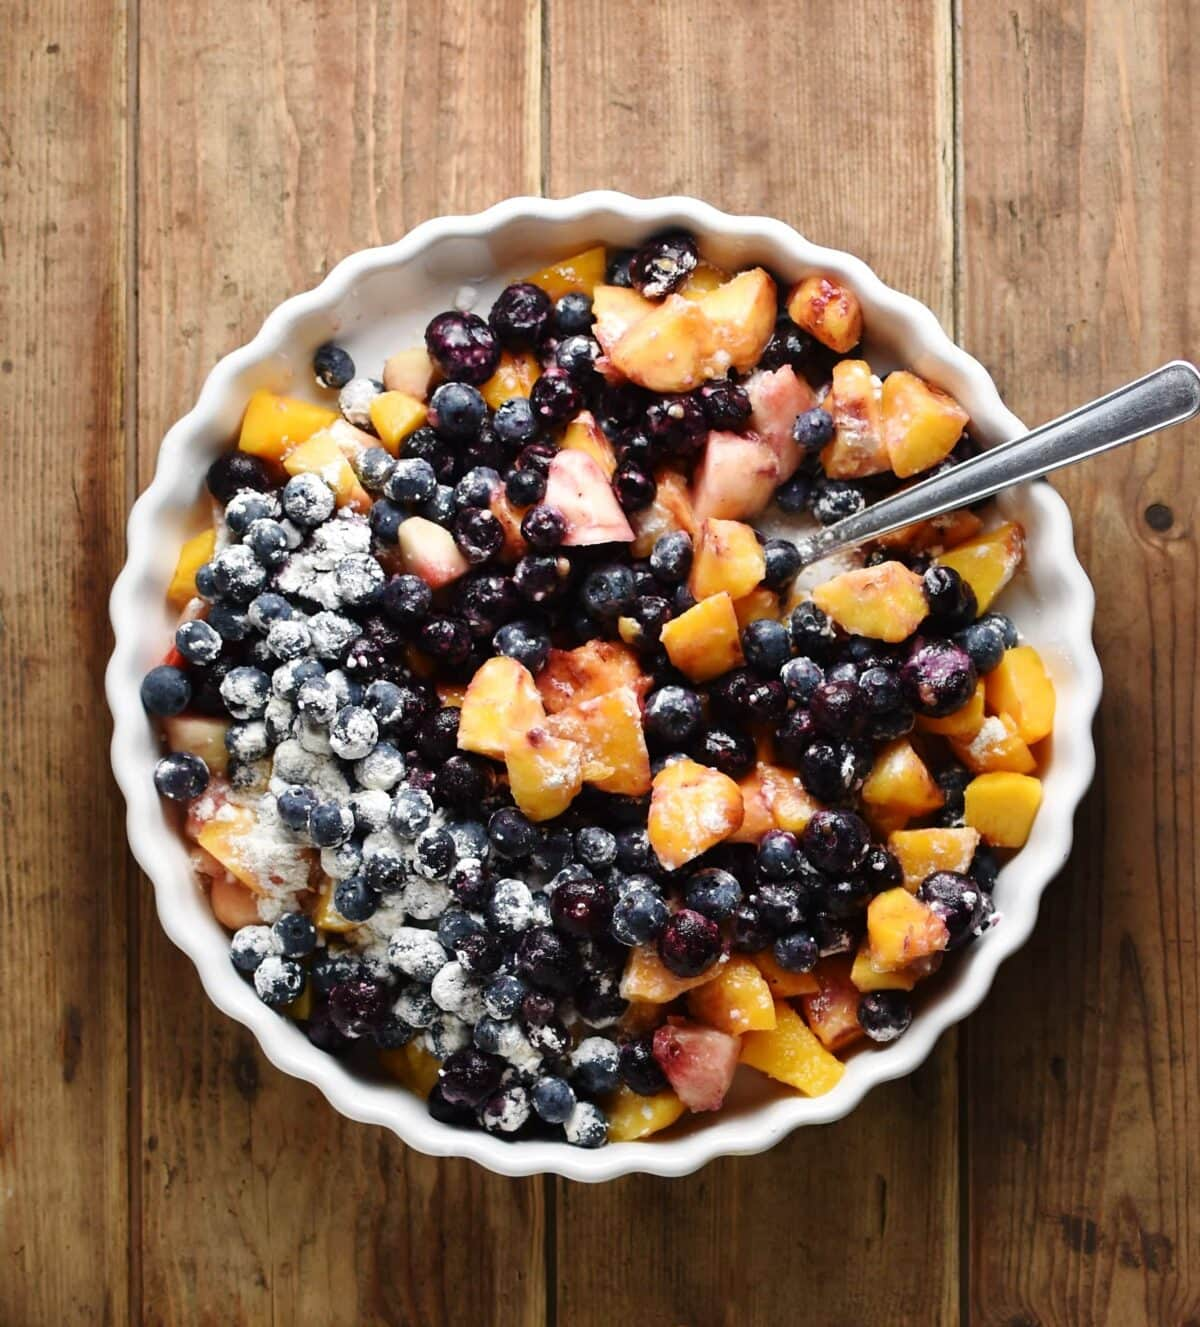 Top down view of cubed peaches and blueberries with flour and spoon in white pie dish.